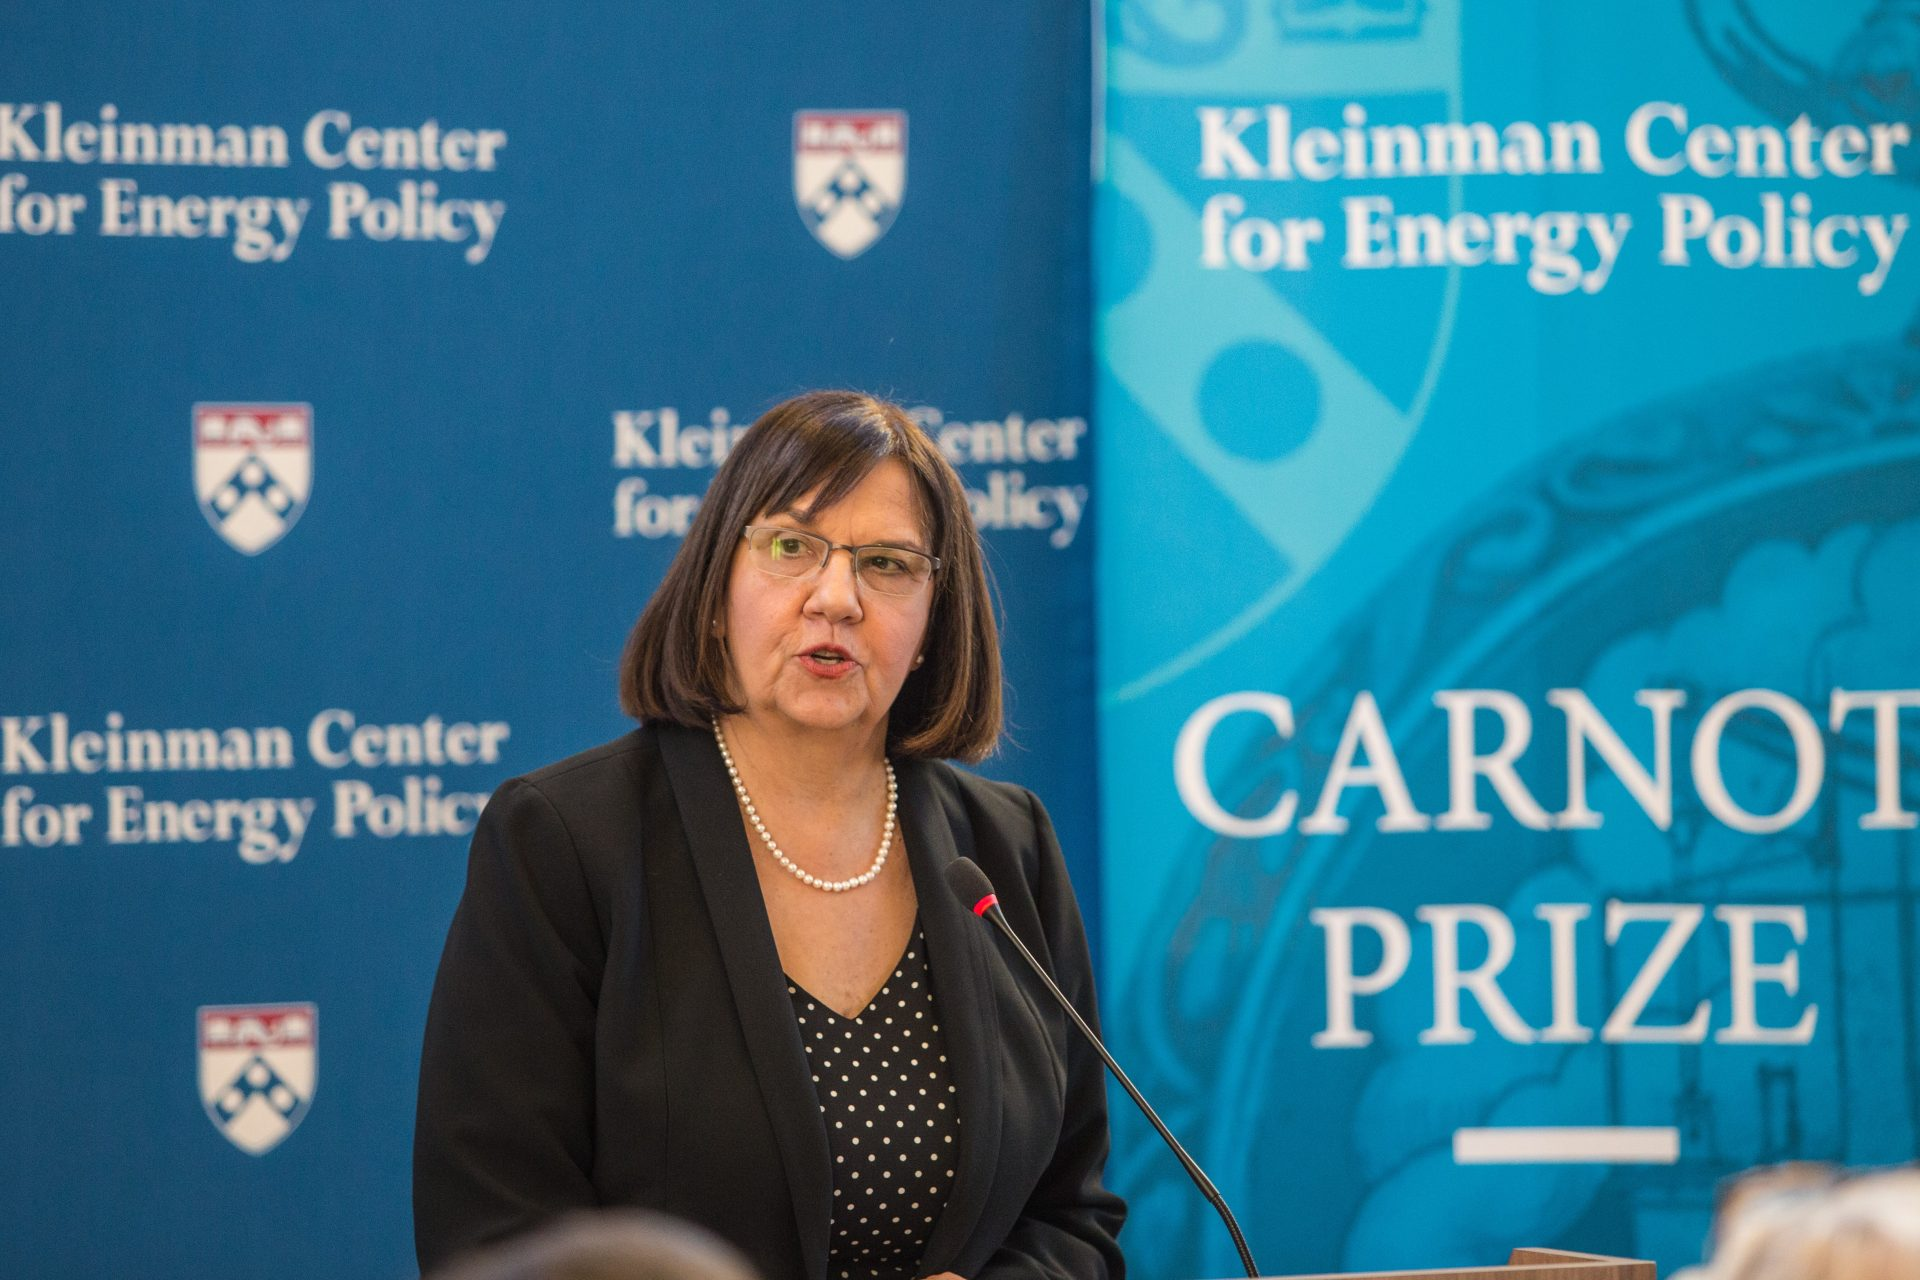 Cheryl LaFleur, former commission at the Federal Energy Regulatory Commission, received the Carnot Prize for distinguished contributions to energy policy from the Kleinman Center for Energy Policy at the University of Pennsylvania.